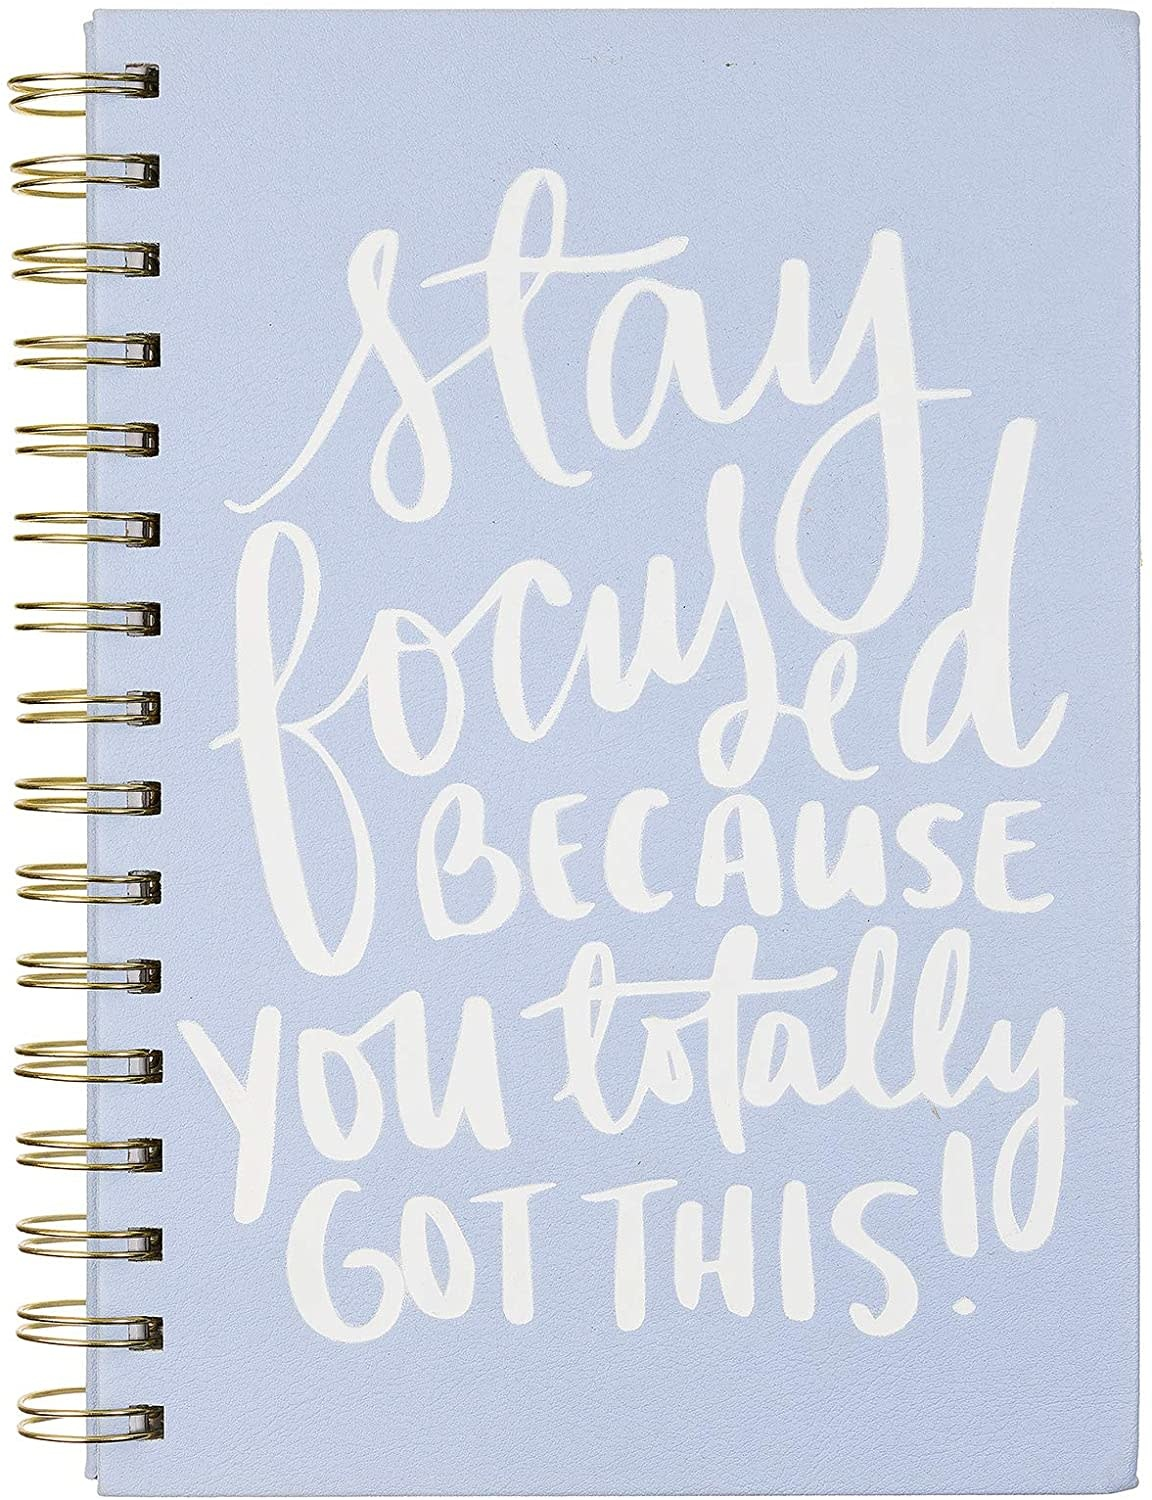 Journal Stay Focused Because You Got This!-1